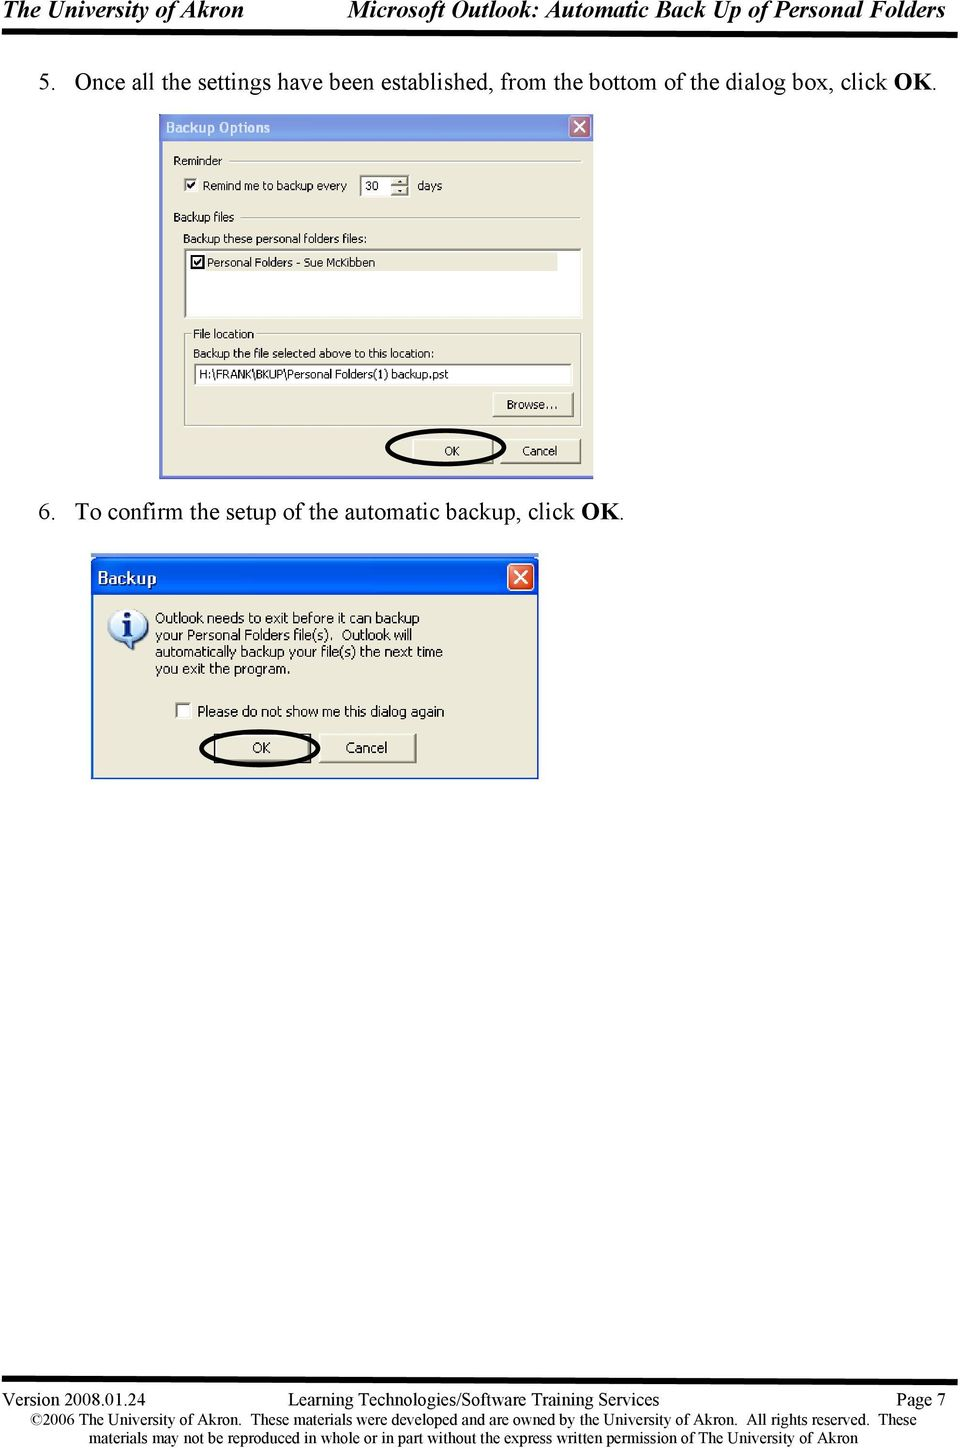 To confirm the setup of the automatic backup, click OK.